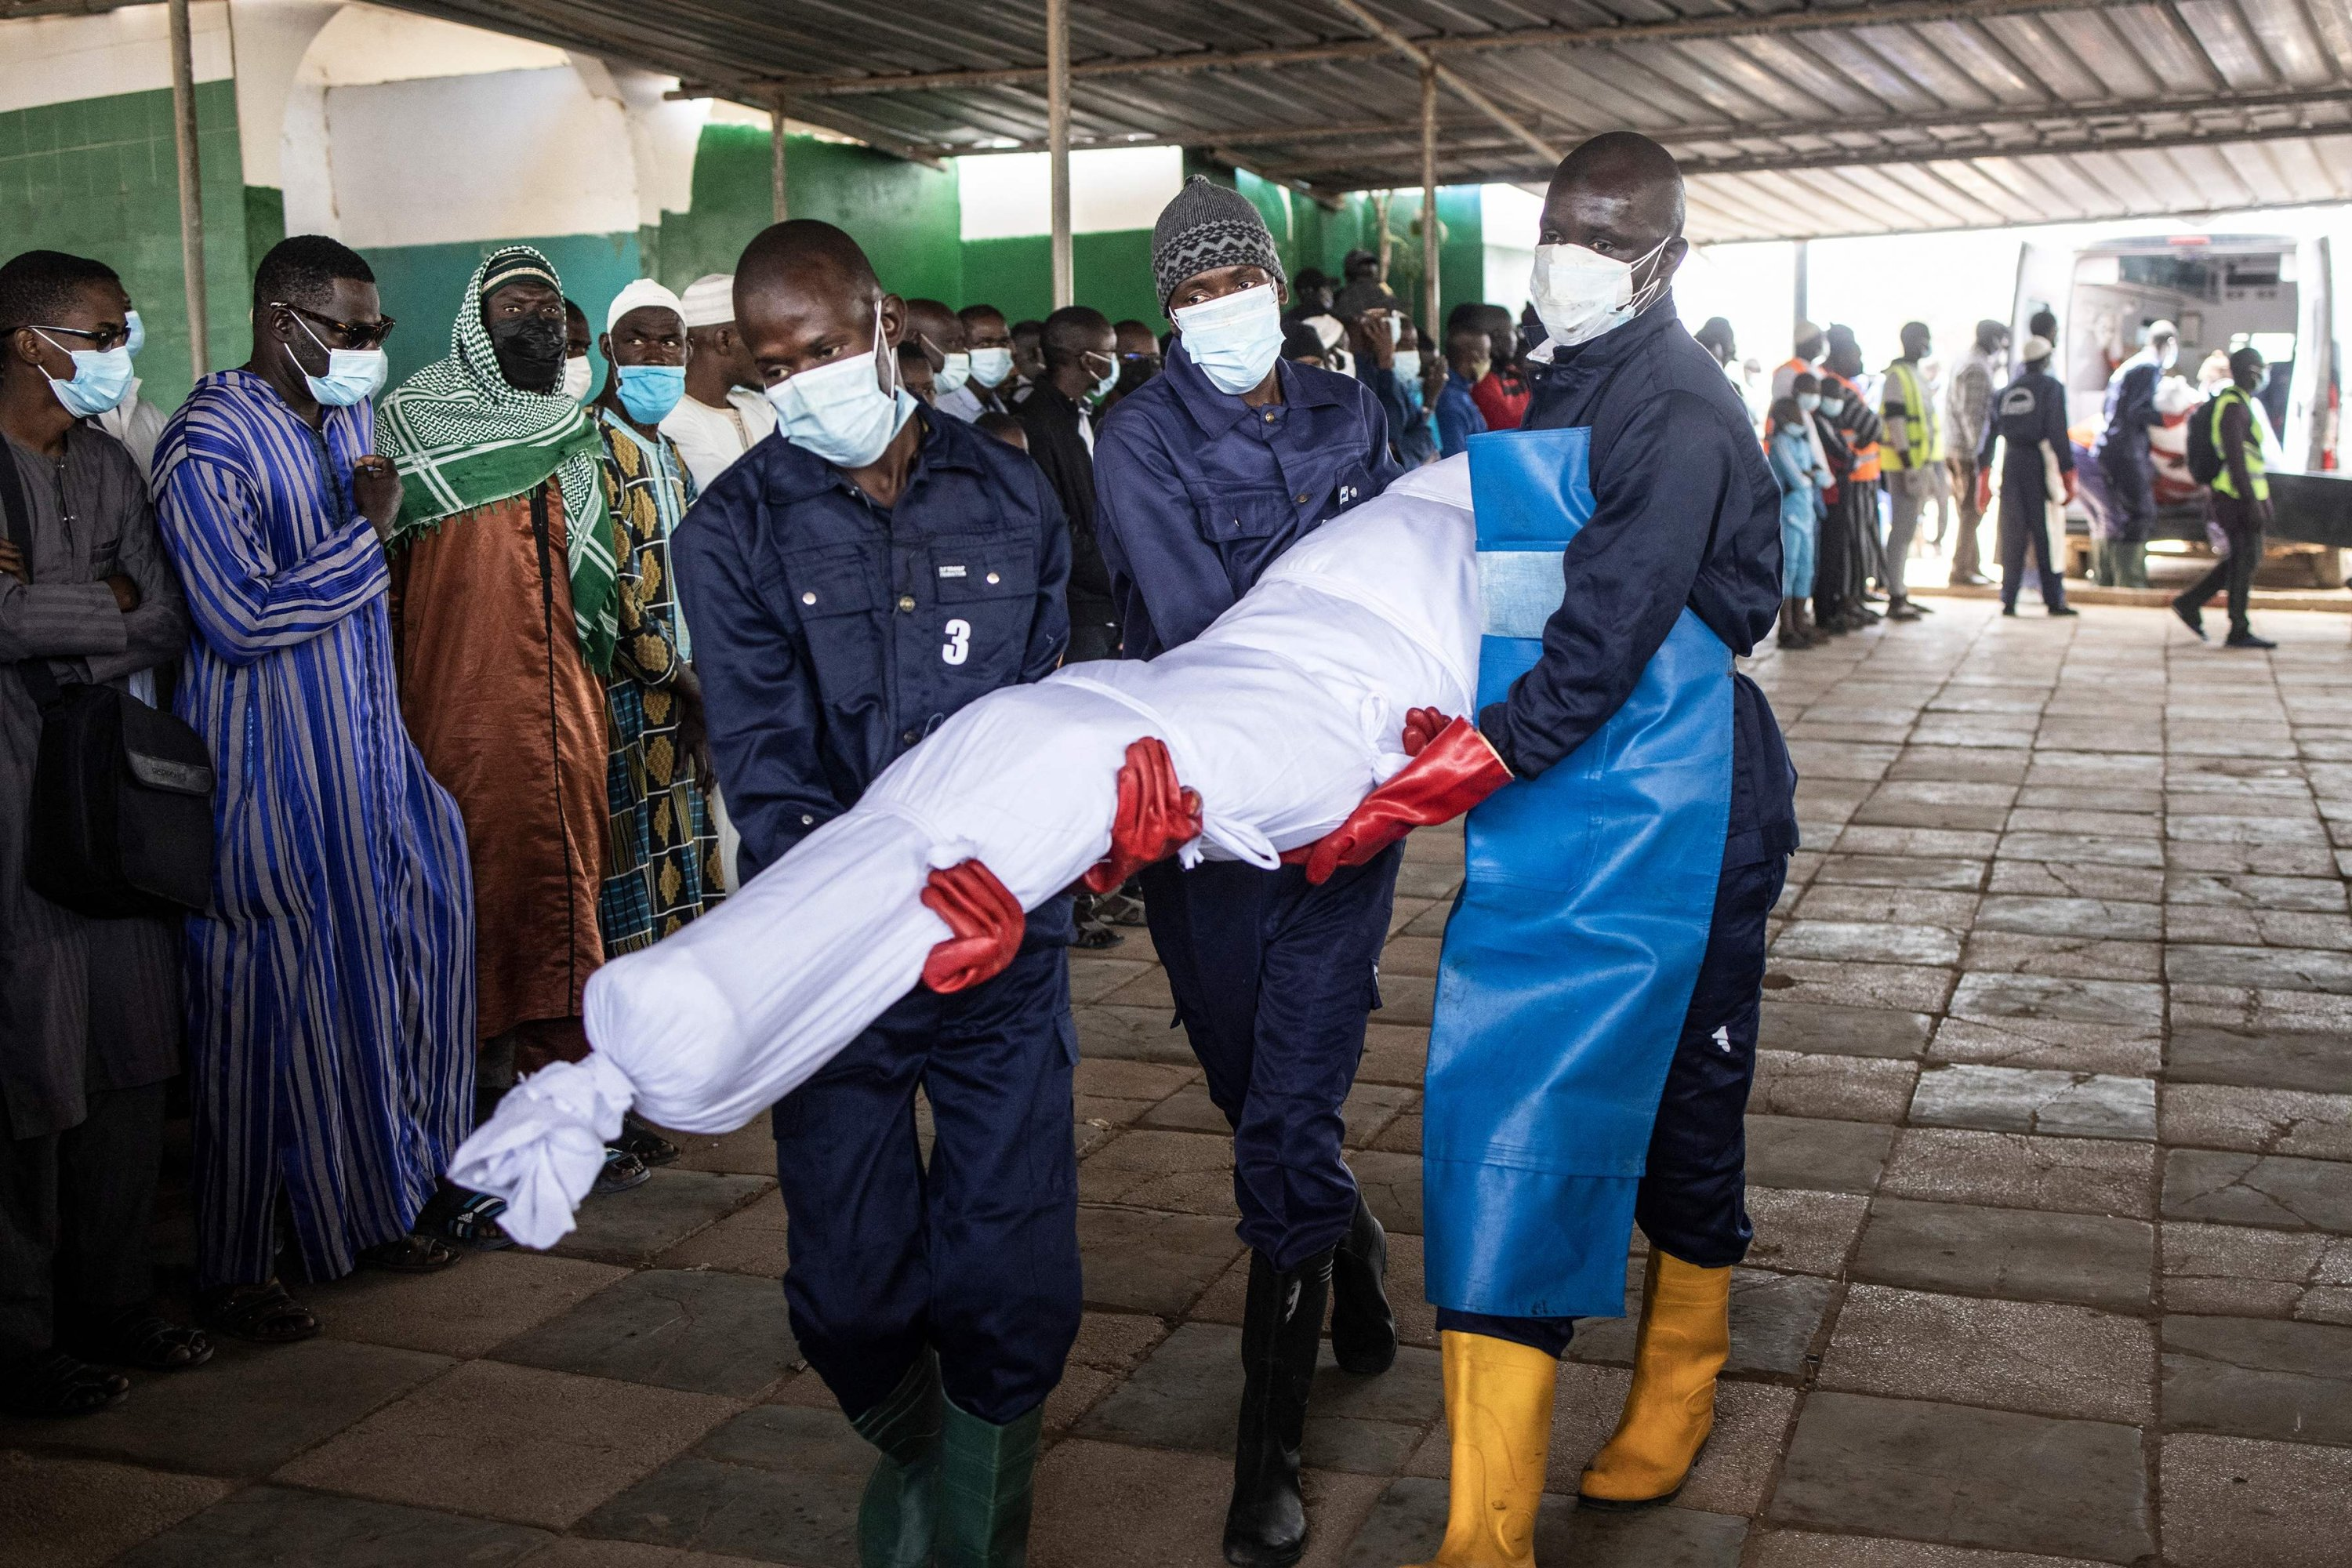 Volunteers of the Association For Solidarity and Perfection (JRWI) carry one of 28 unidentified corpses to a mosque ahead of a prayer in Dakar, Senegal, March 28, 2021. (AFP Photo)